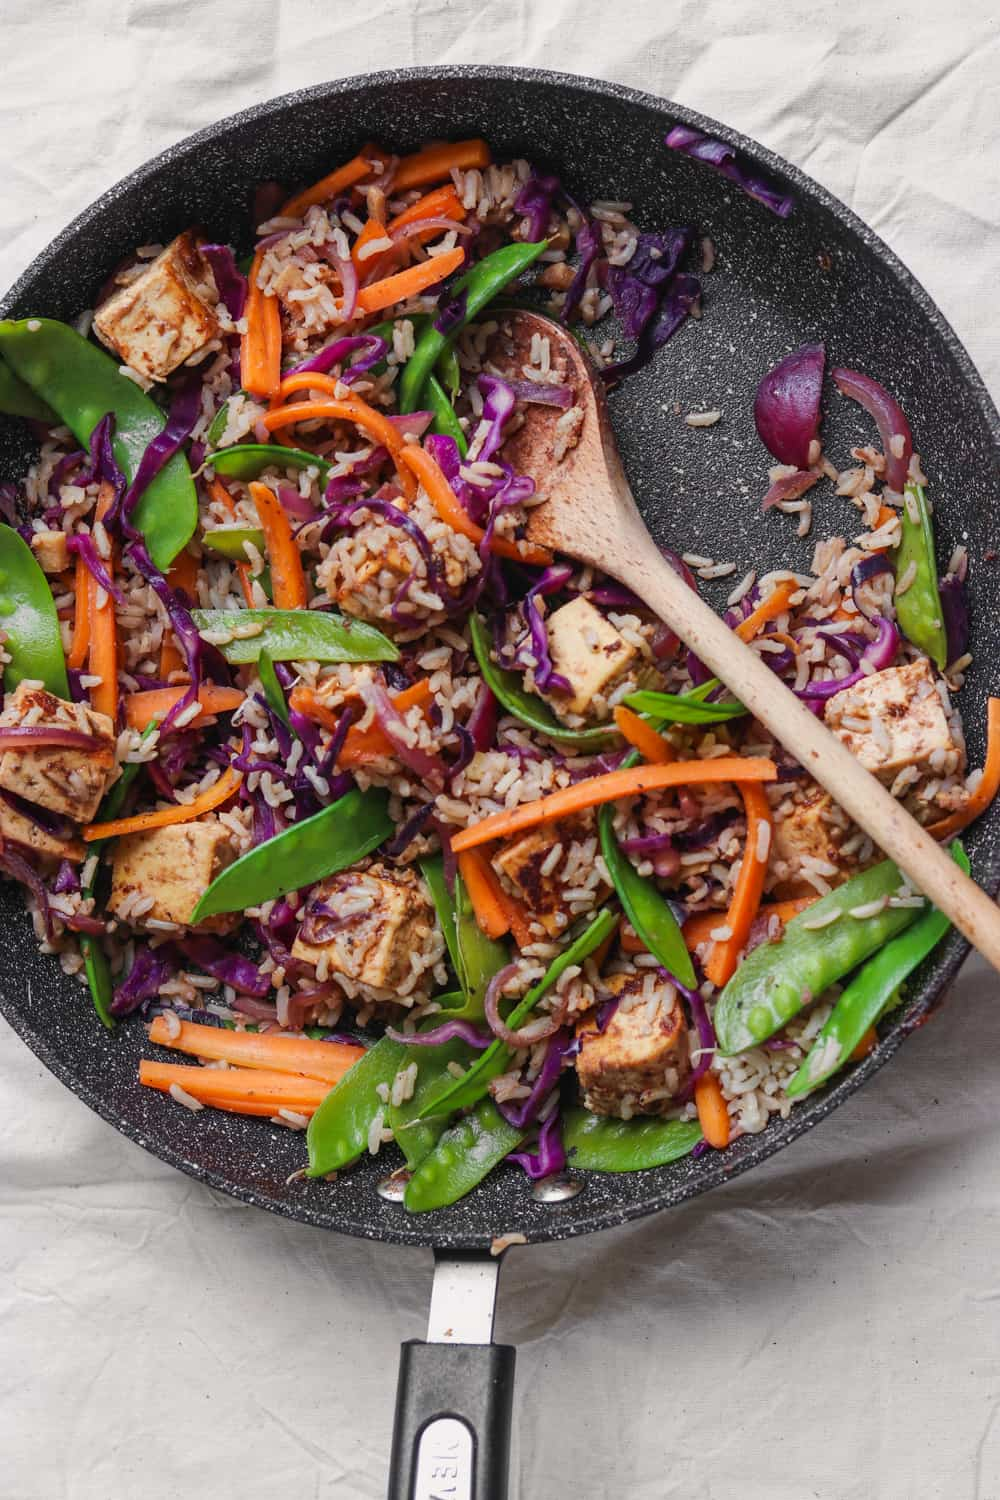 Gluten-free vegan stir-fry with tofu and vegetables